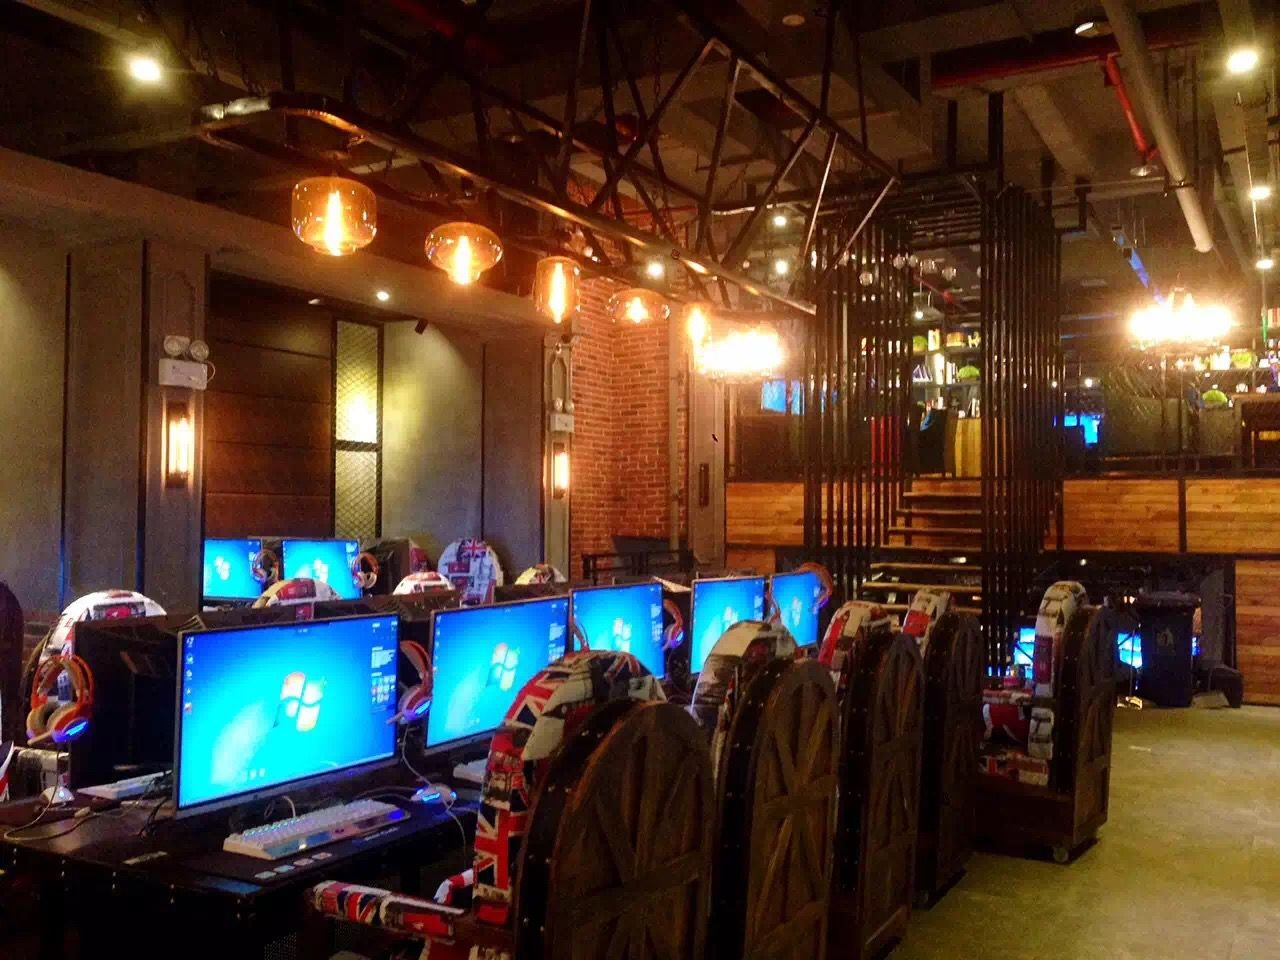 Internet Cafe In Hubei Cyber Cafe Interior Game Cafe Cyber Cafe